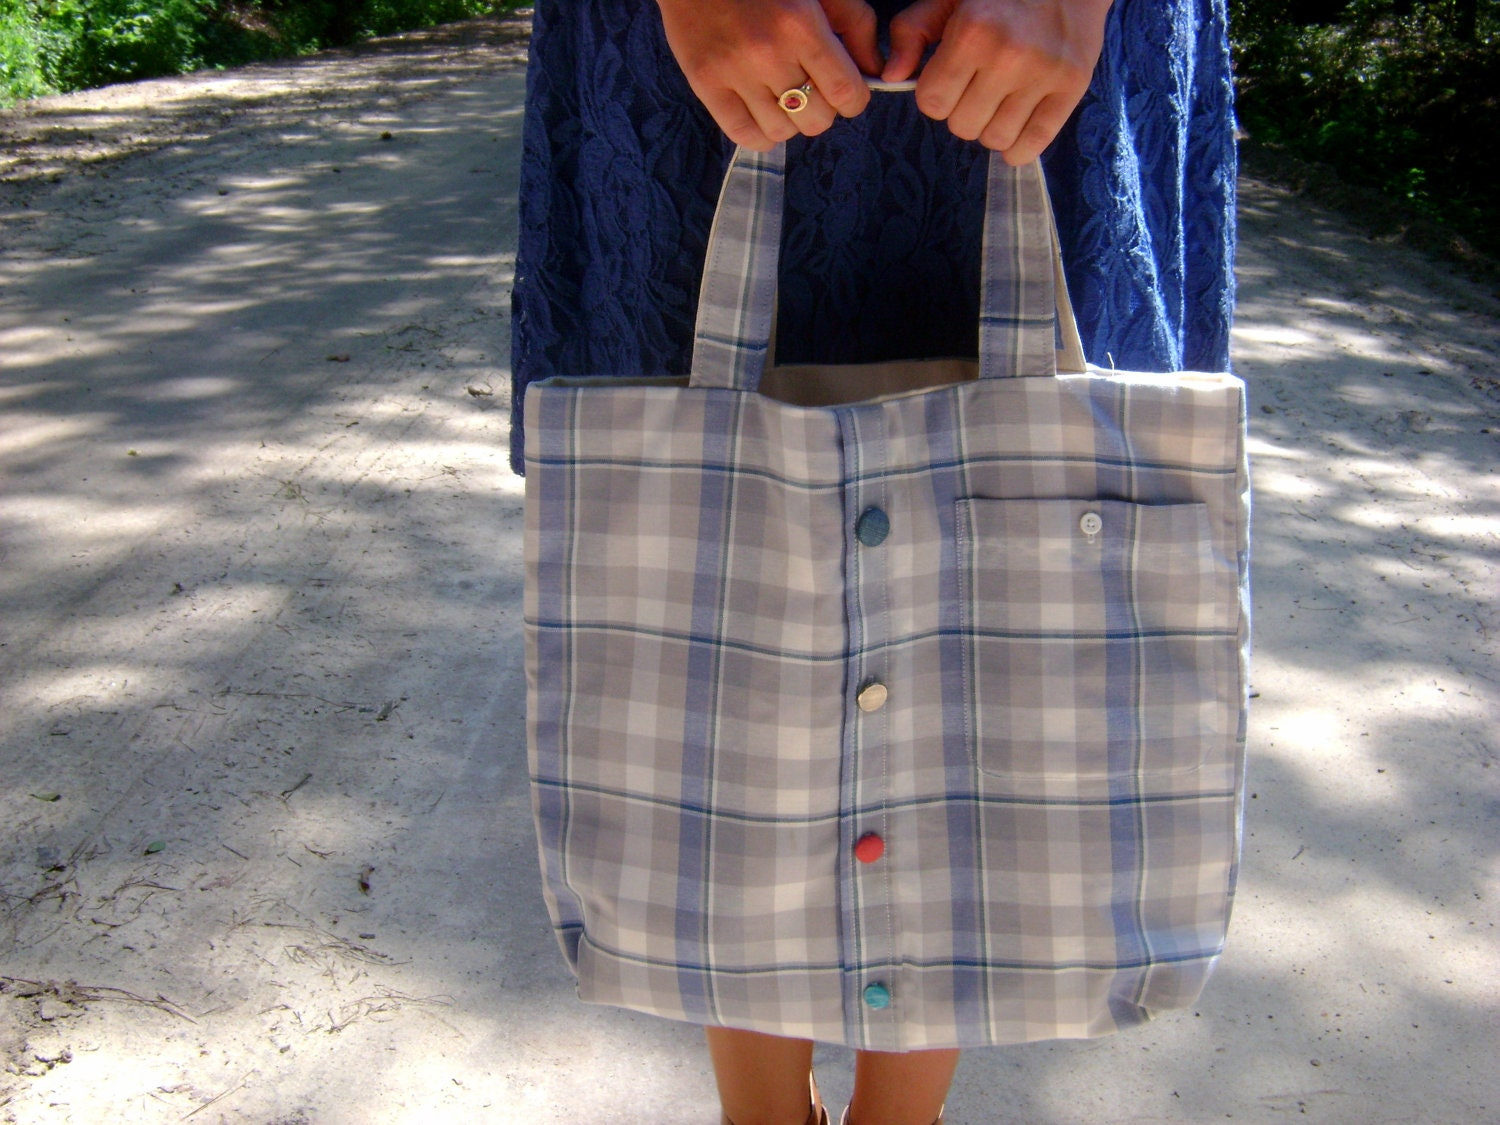 Blue, White and Grey Shirt Tote with Colored Buttons